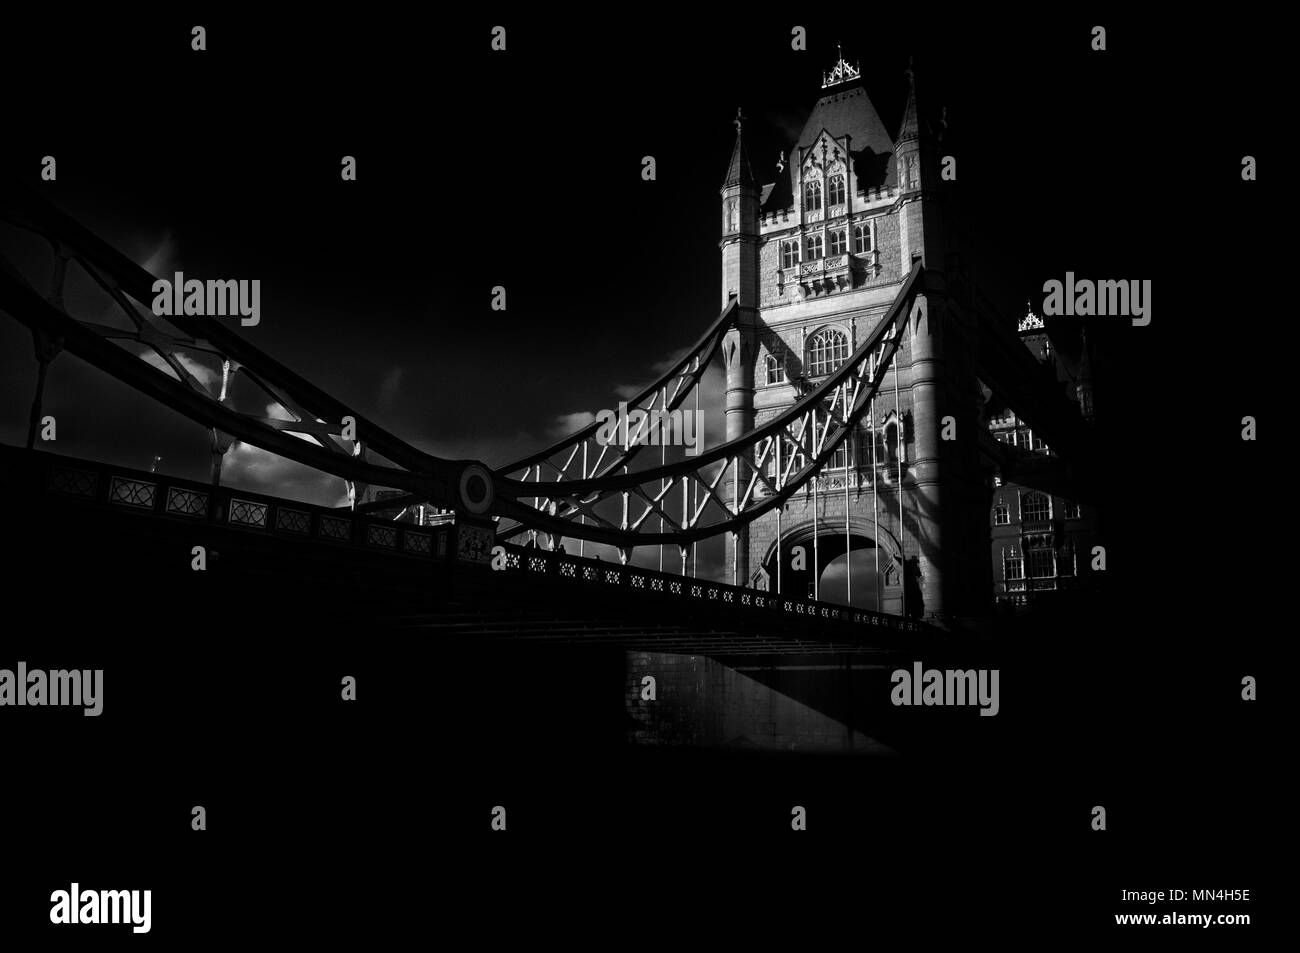 Tower Bridge, London.  Fine art monochrome photograph of one of the most famous and instantly recognisable landmarks in the world. - Stock Image